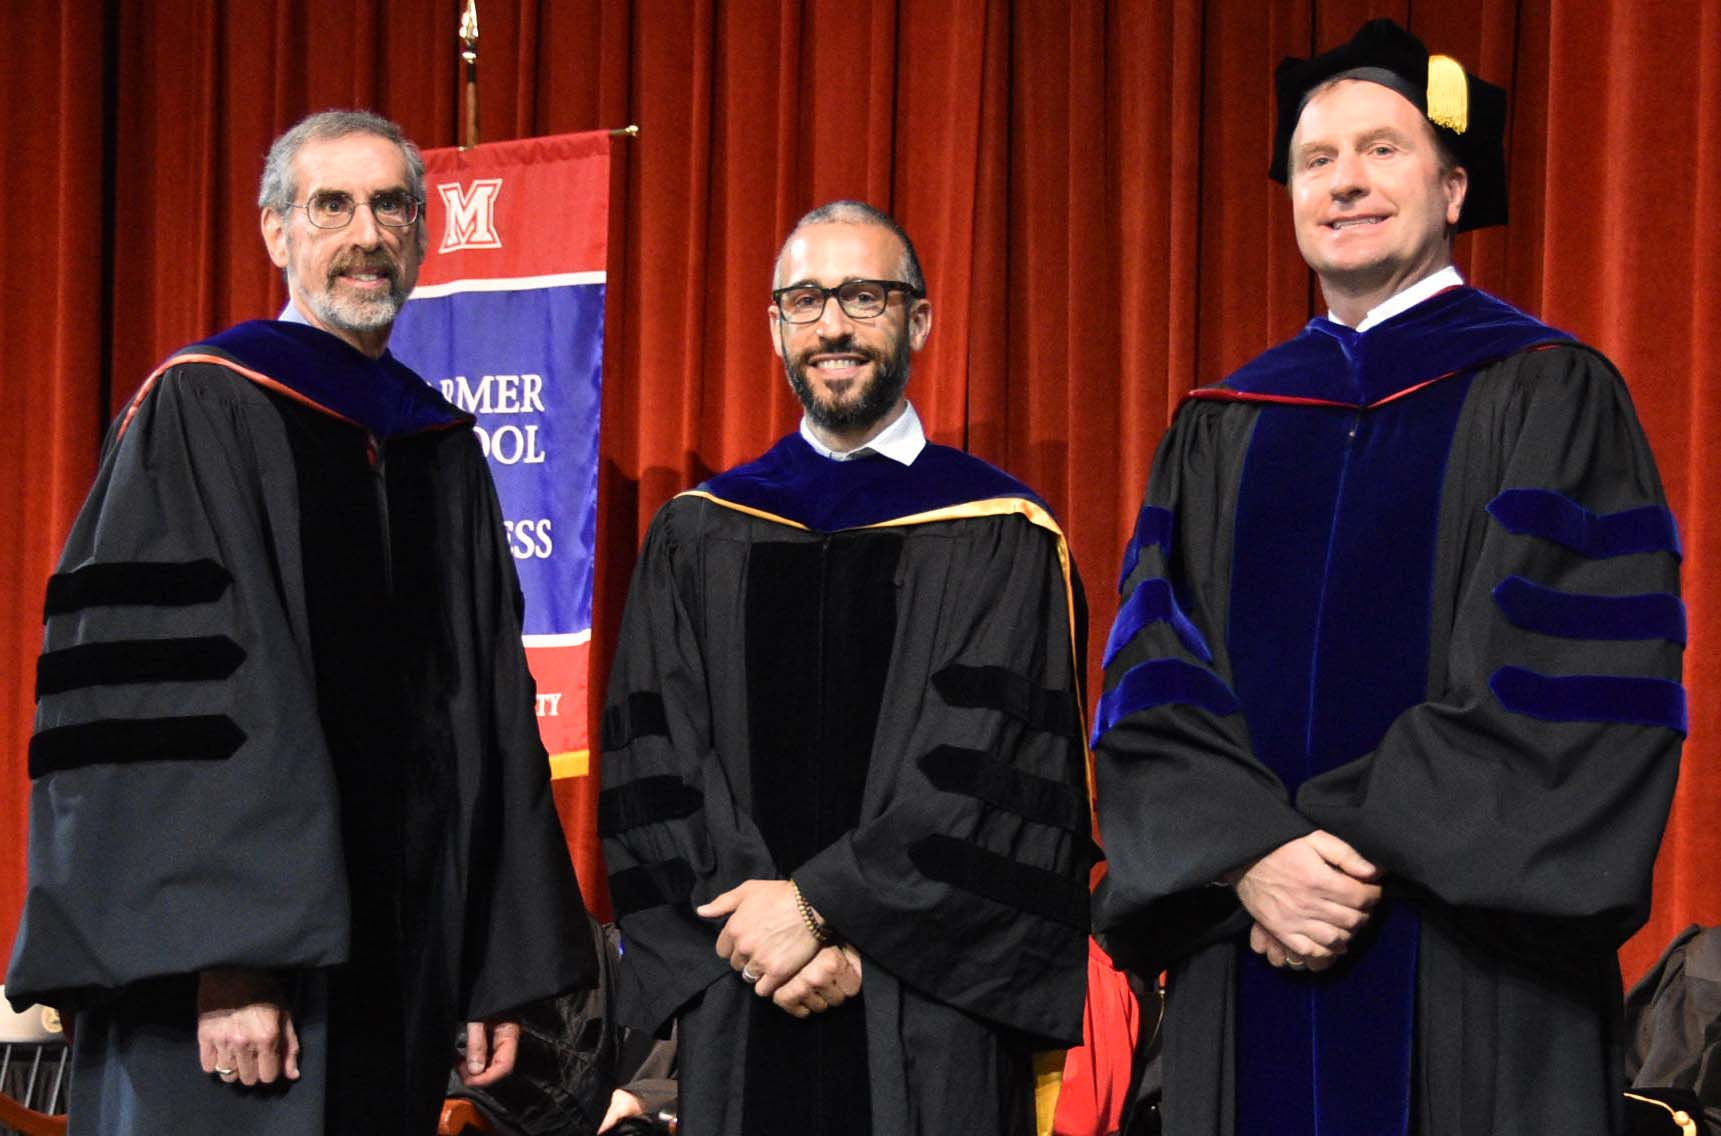 Dean Marc Rubin, Dr. Scott Dust, Dr. Joe Rode